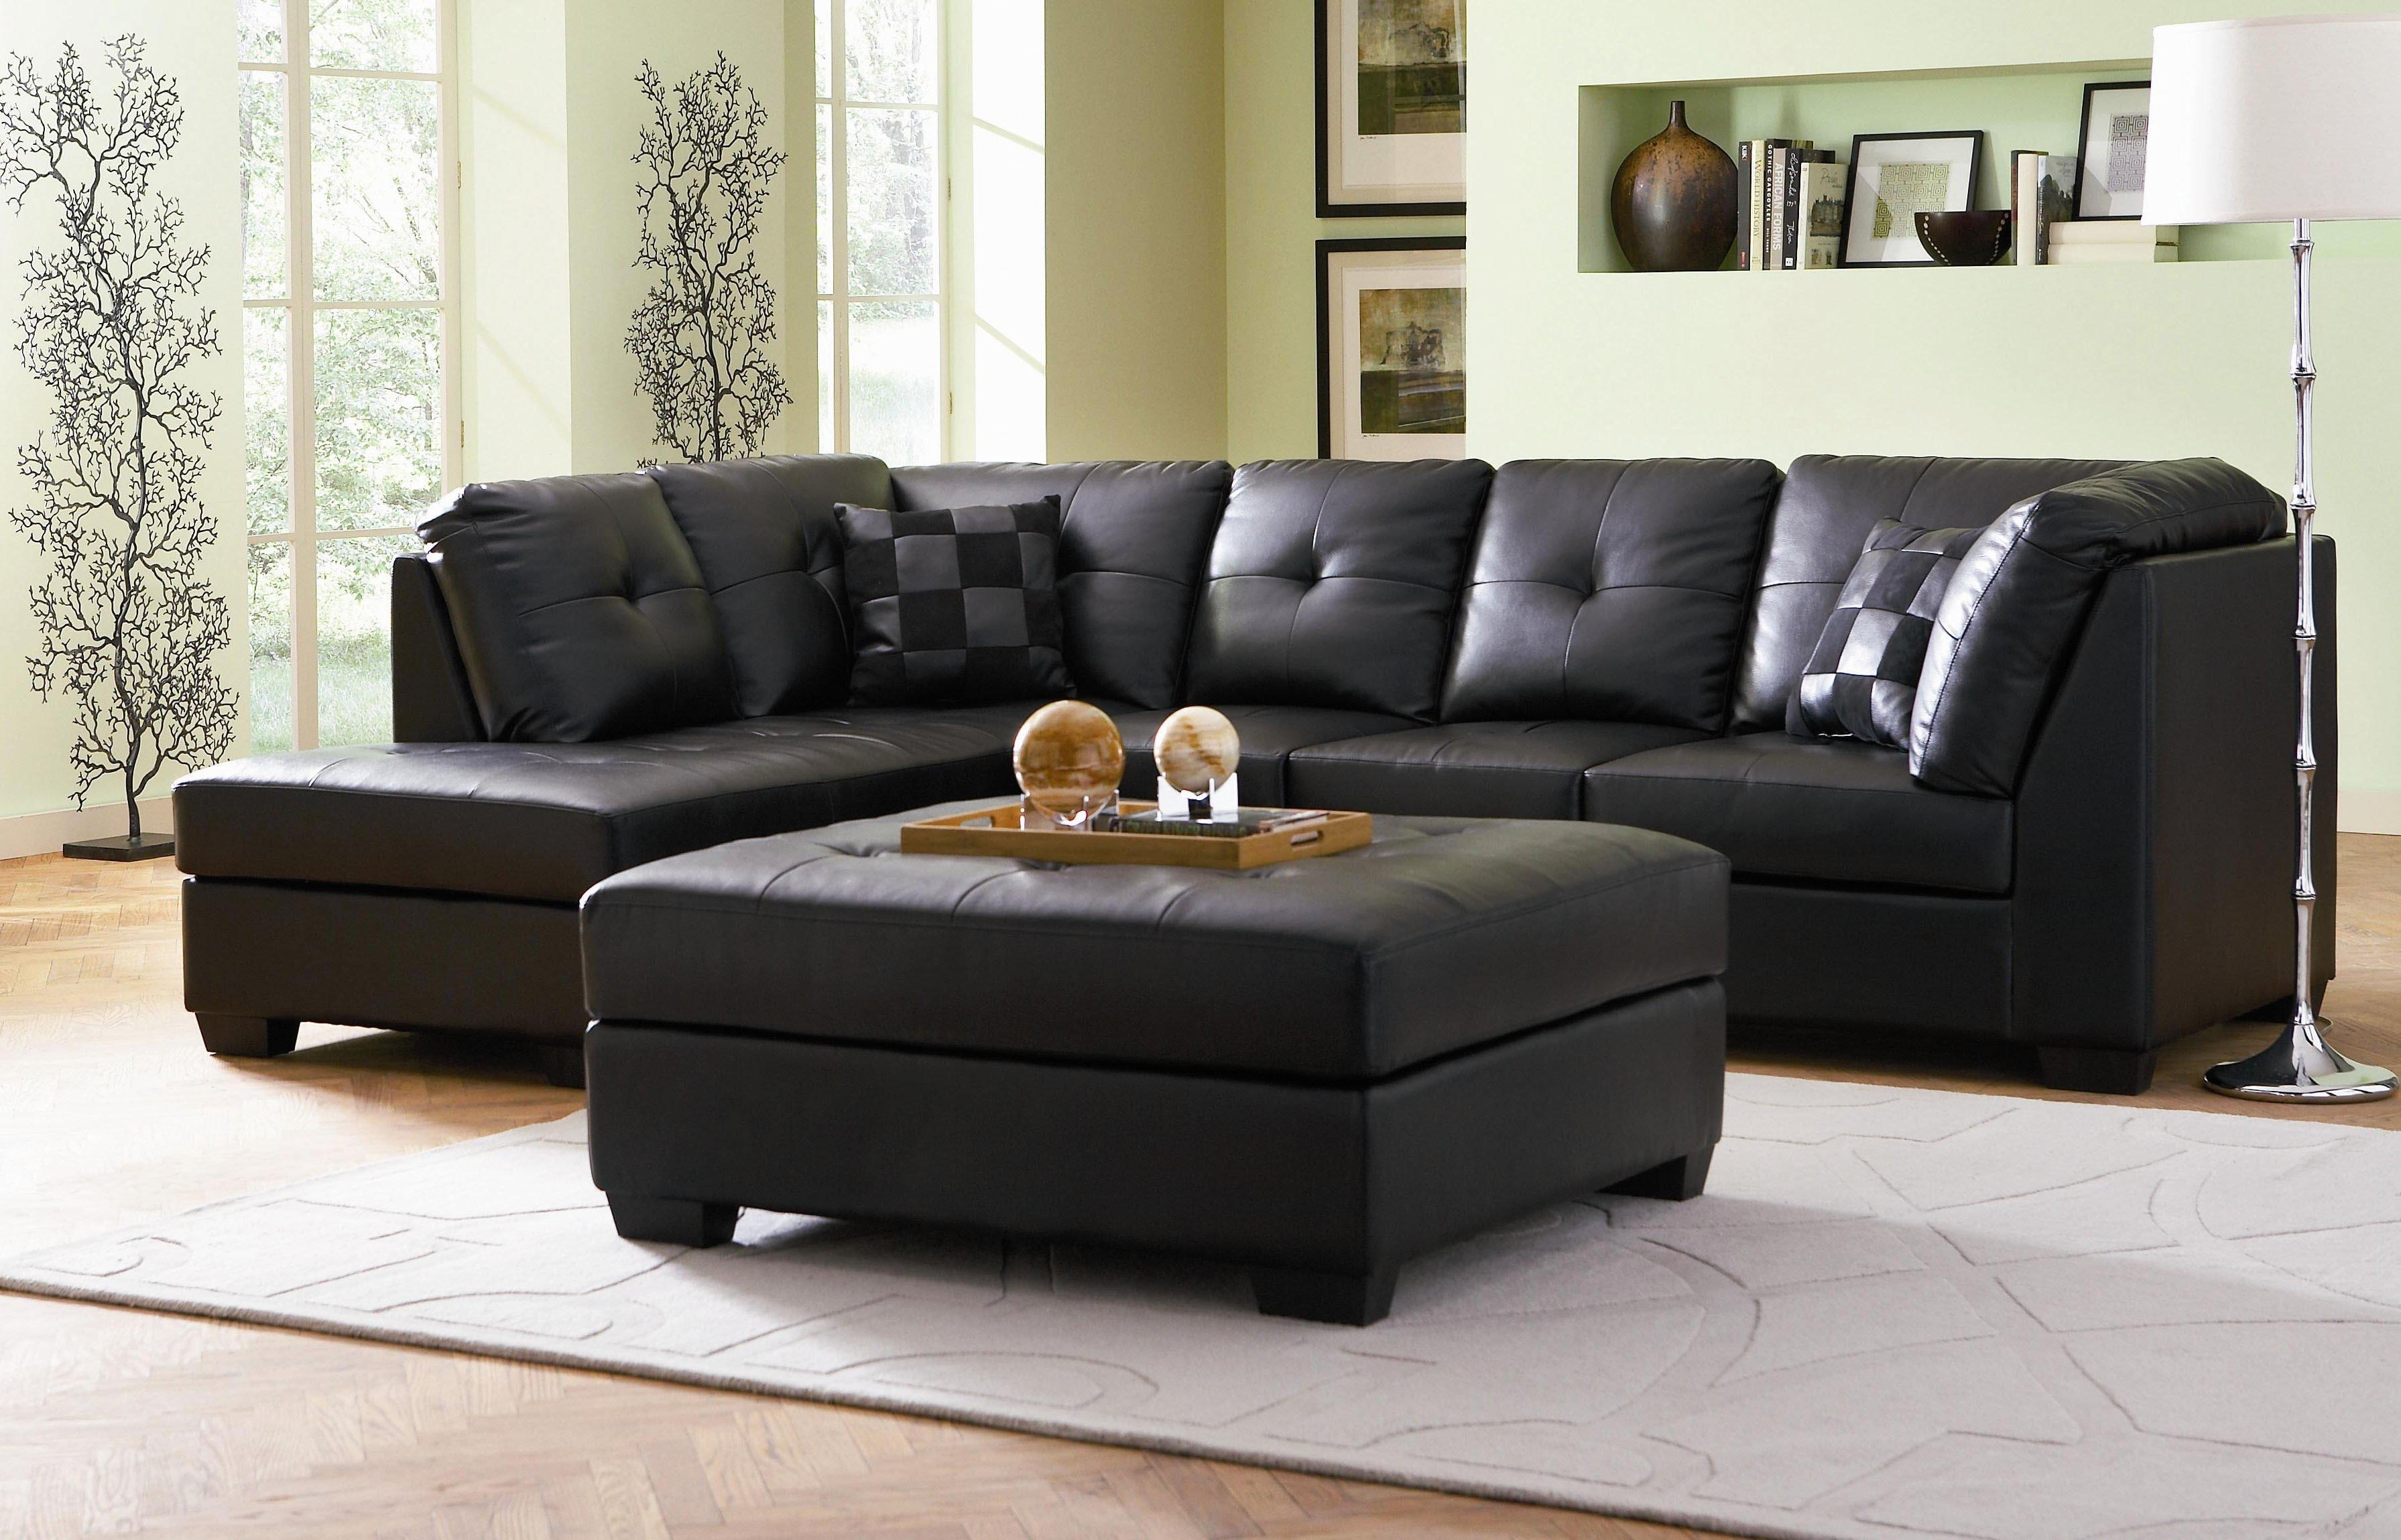 Hotelsbacau – Sectional Sofa Ideas For Discounted Sectional Sofa (Image 9 of 15)